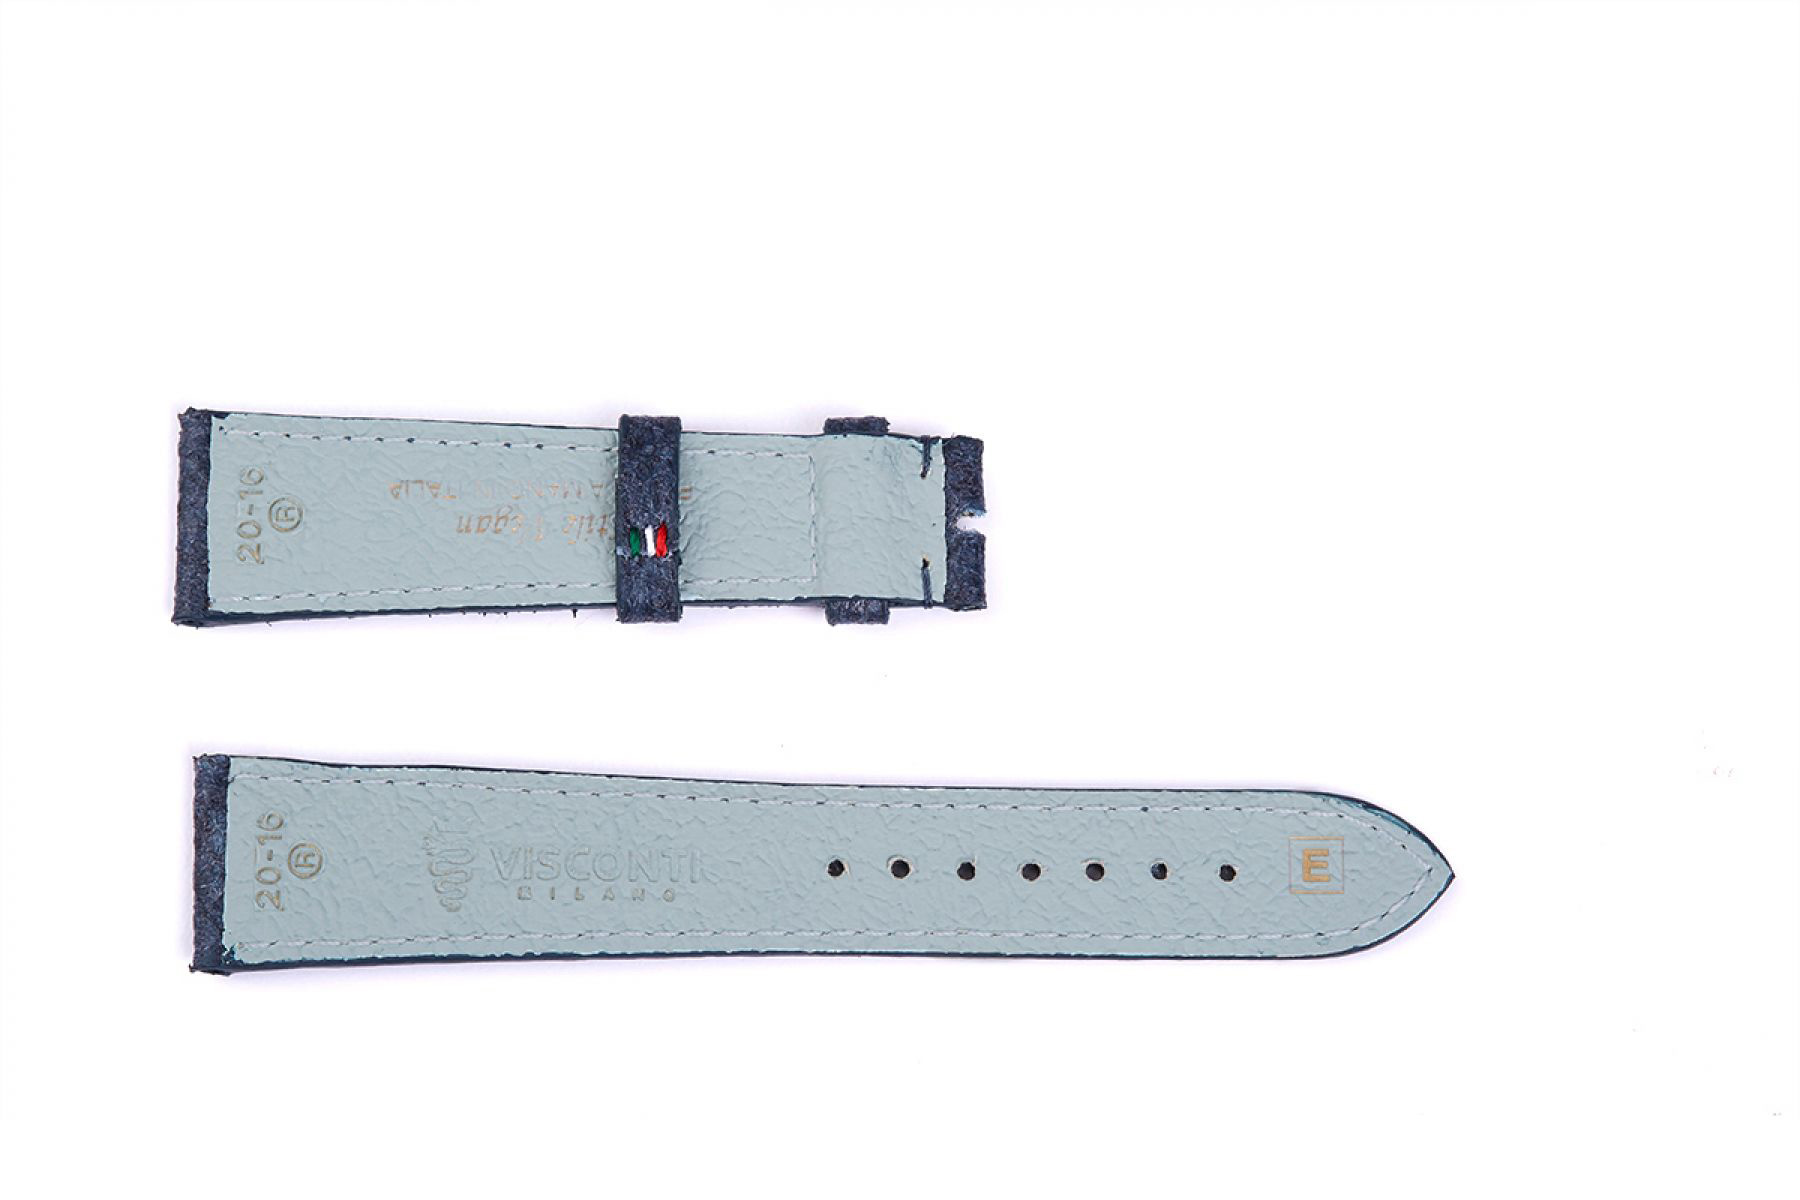 Indigo Blue Pinatex Strap 16mm, 18mm, 19mm, 20mm, 21mm, 22mm General style